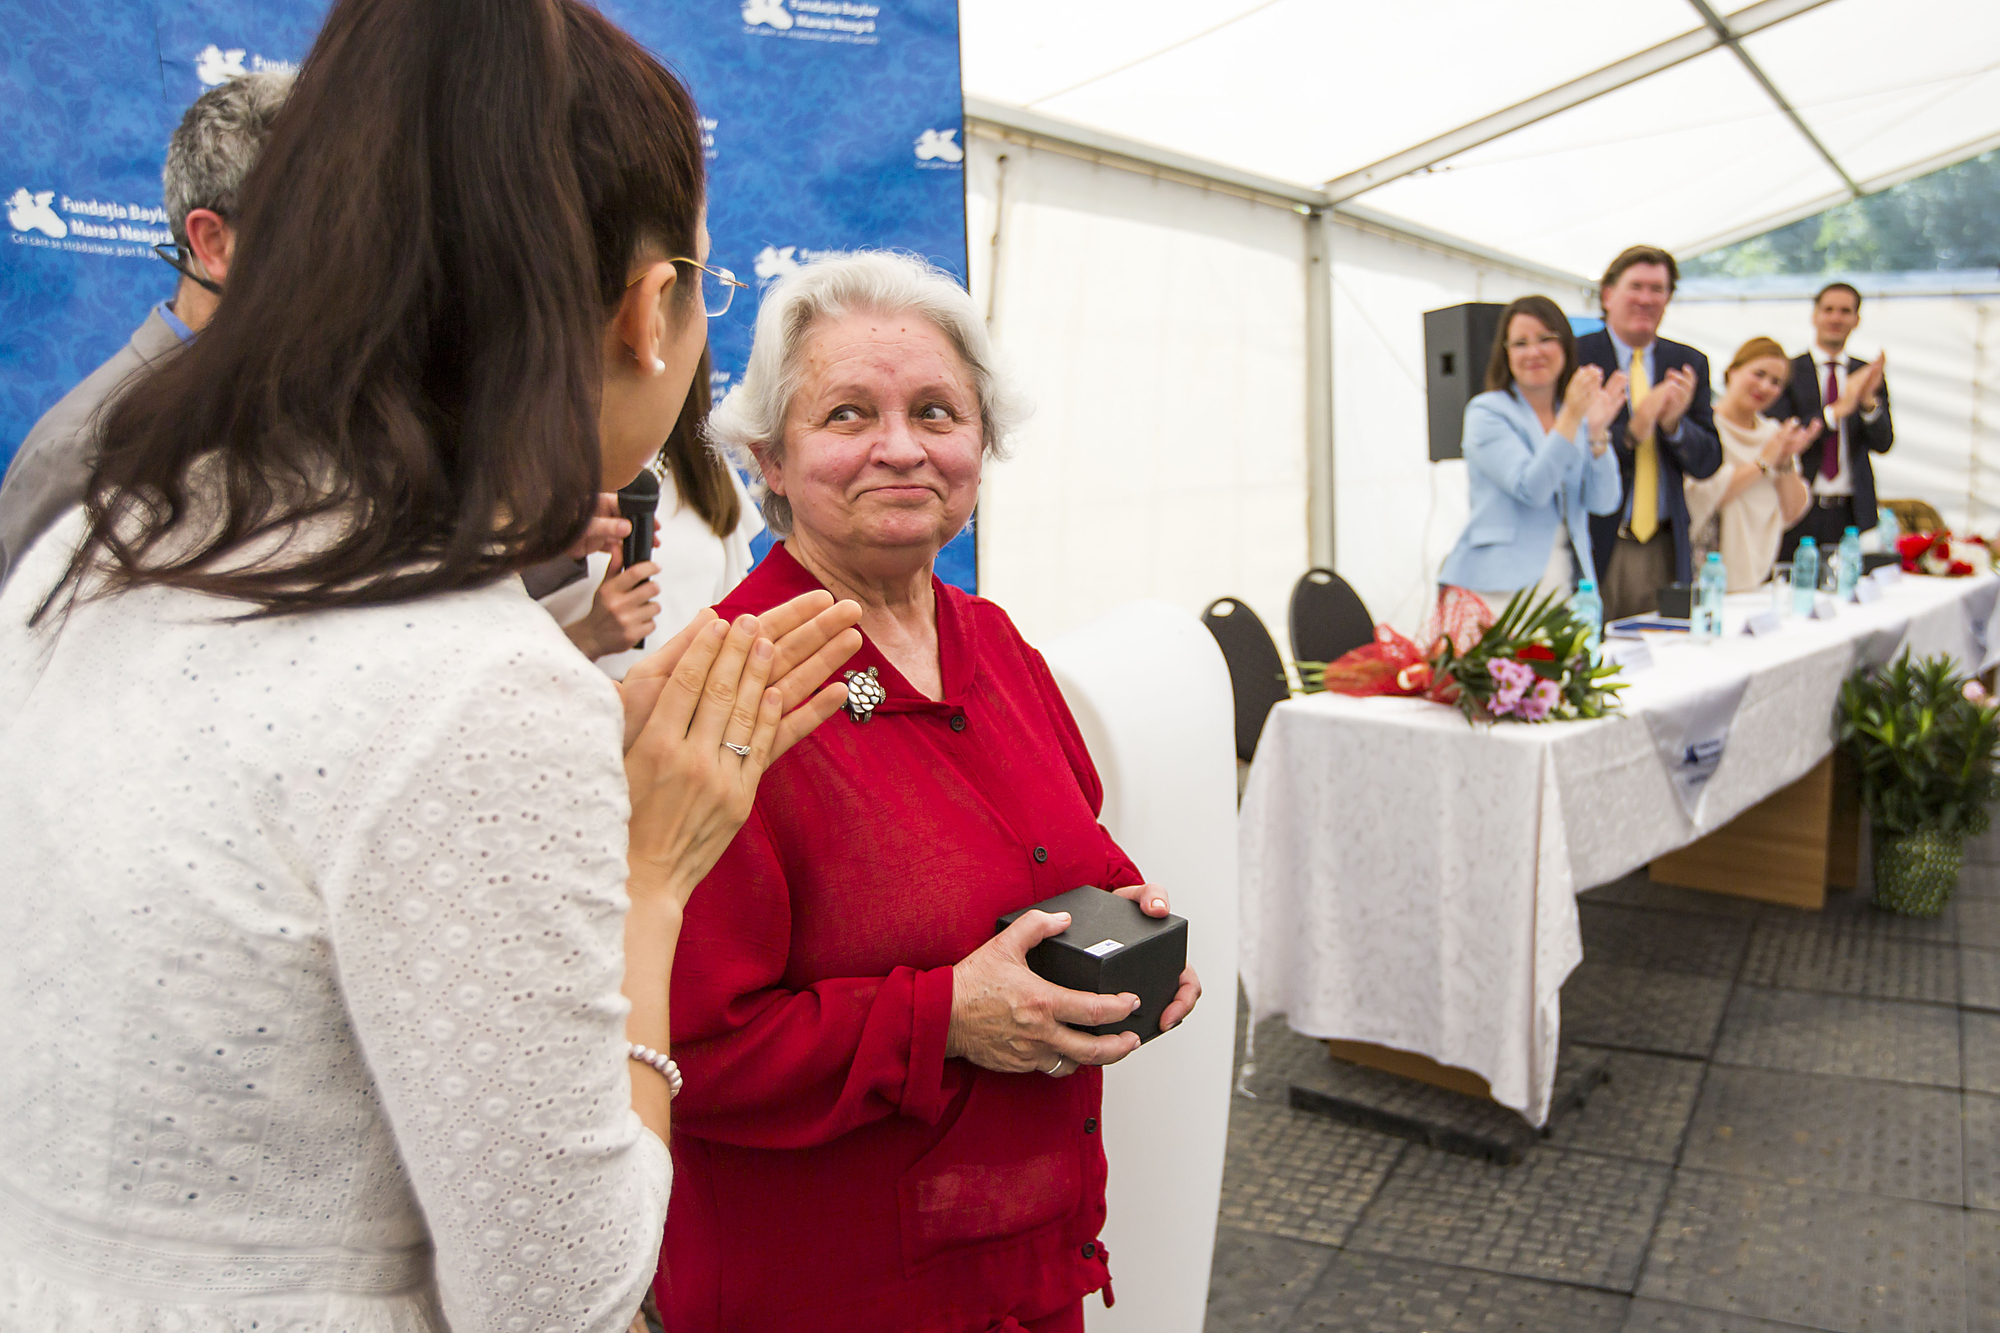 Ana-Maria Schweitzer, Executive Director, Romania, applauds Dr. Rodica Matusa, who receives a standing ovation during a celebration of the opening of the expansion of the Baylor Black Sea Foundation Center of Excellence on Tuesday, June 7, 2016, in Constanta, Romania. ( Photo by  Smiley N. Pool / © 2016  )